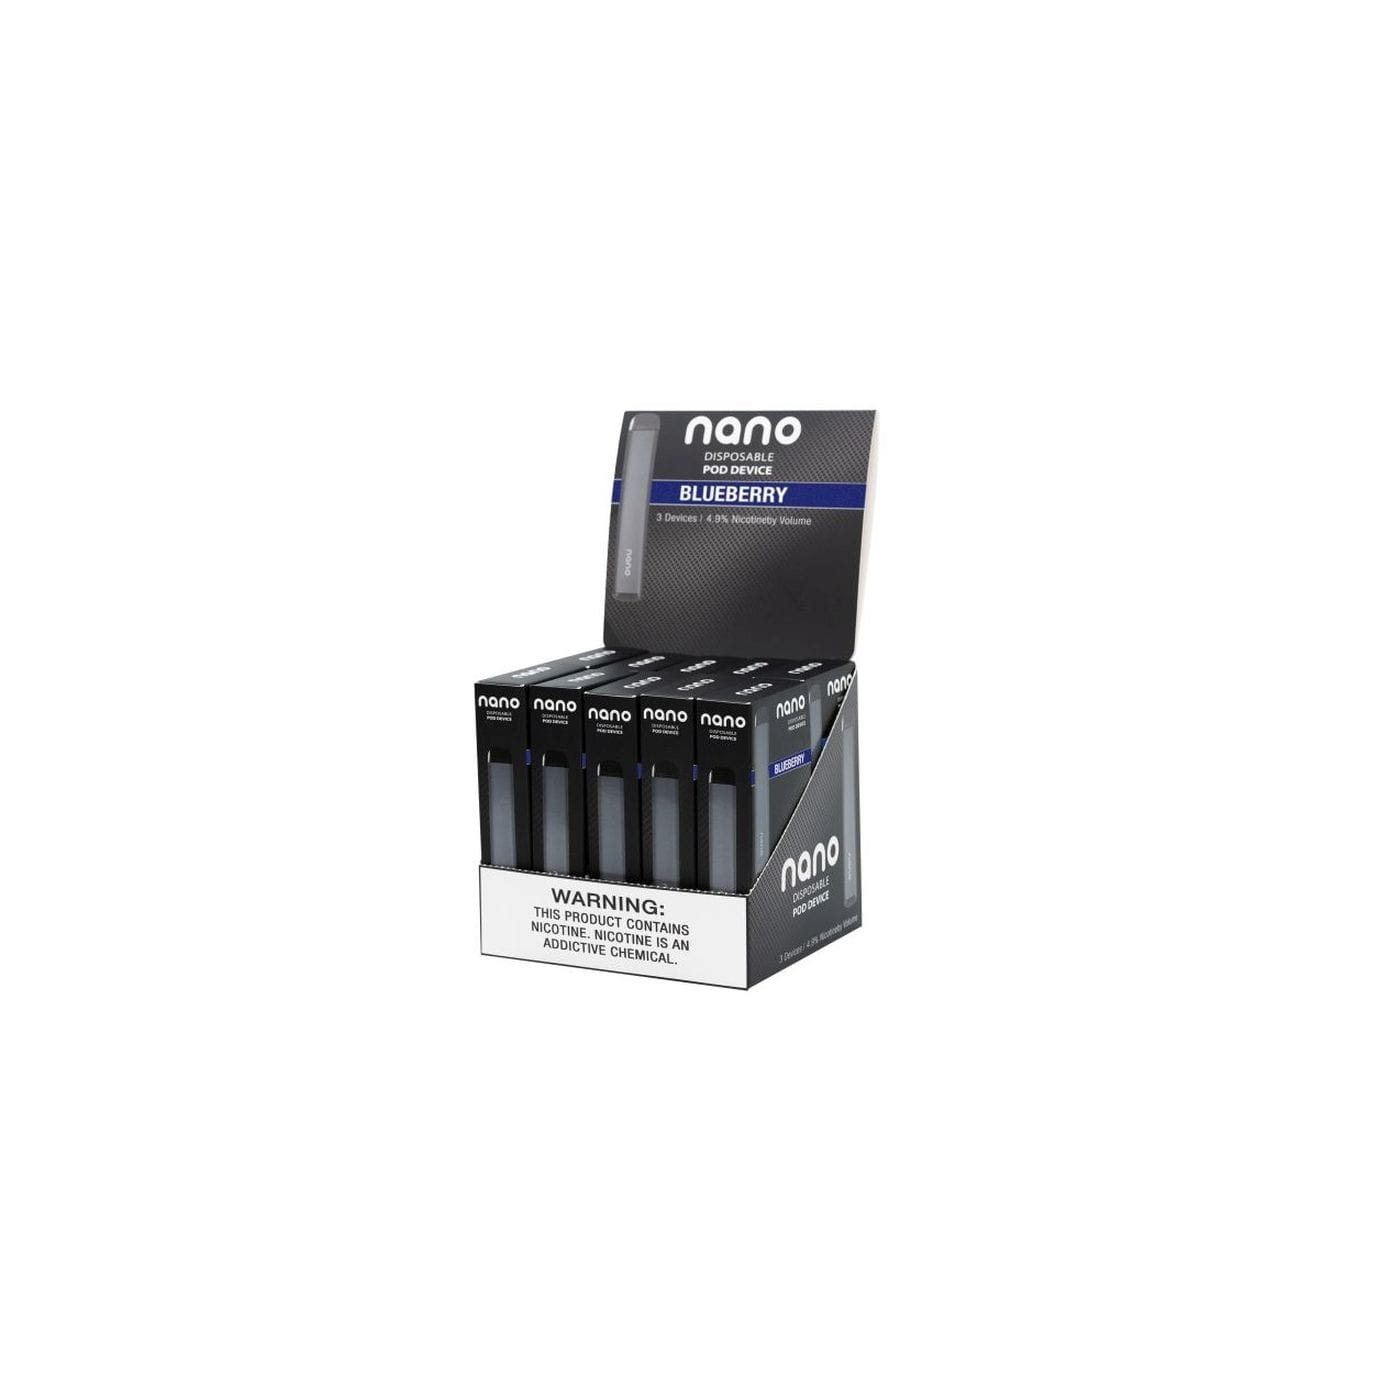 IPHA Nano Disposable - 30 pack